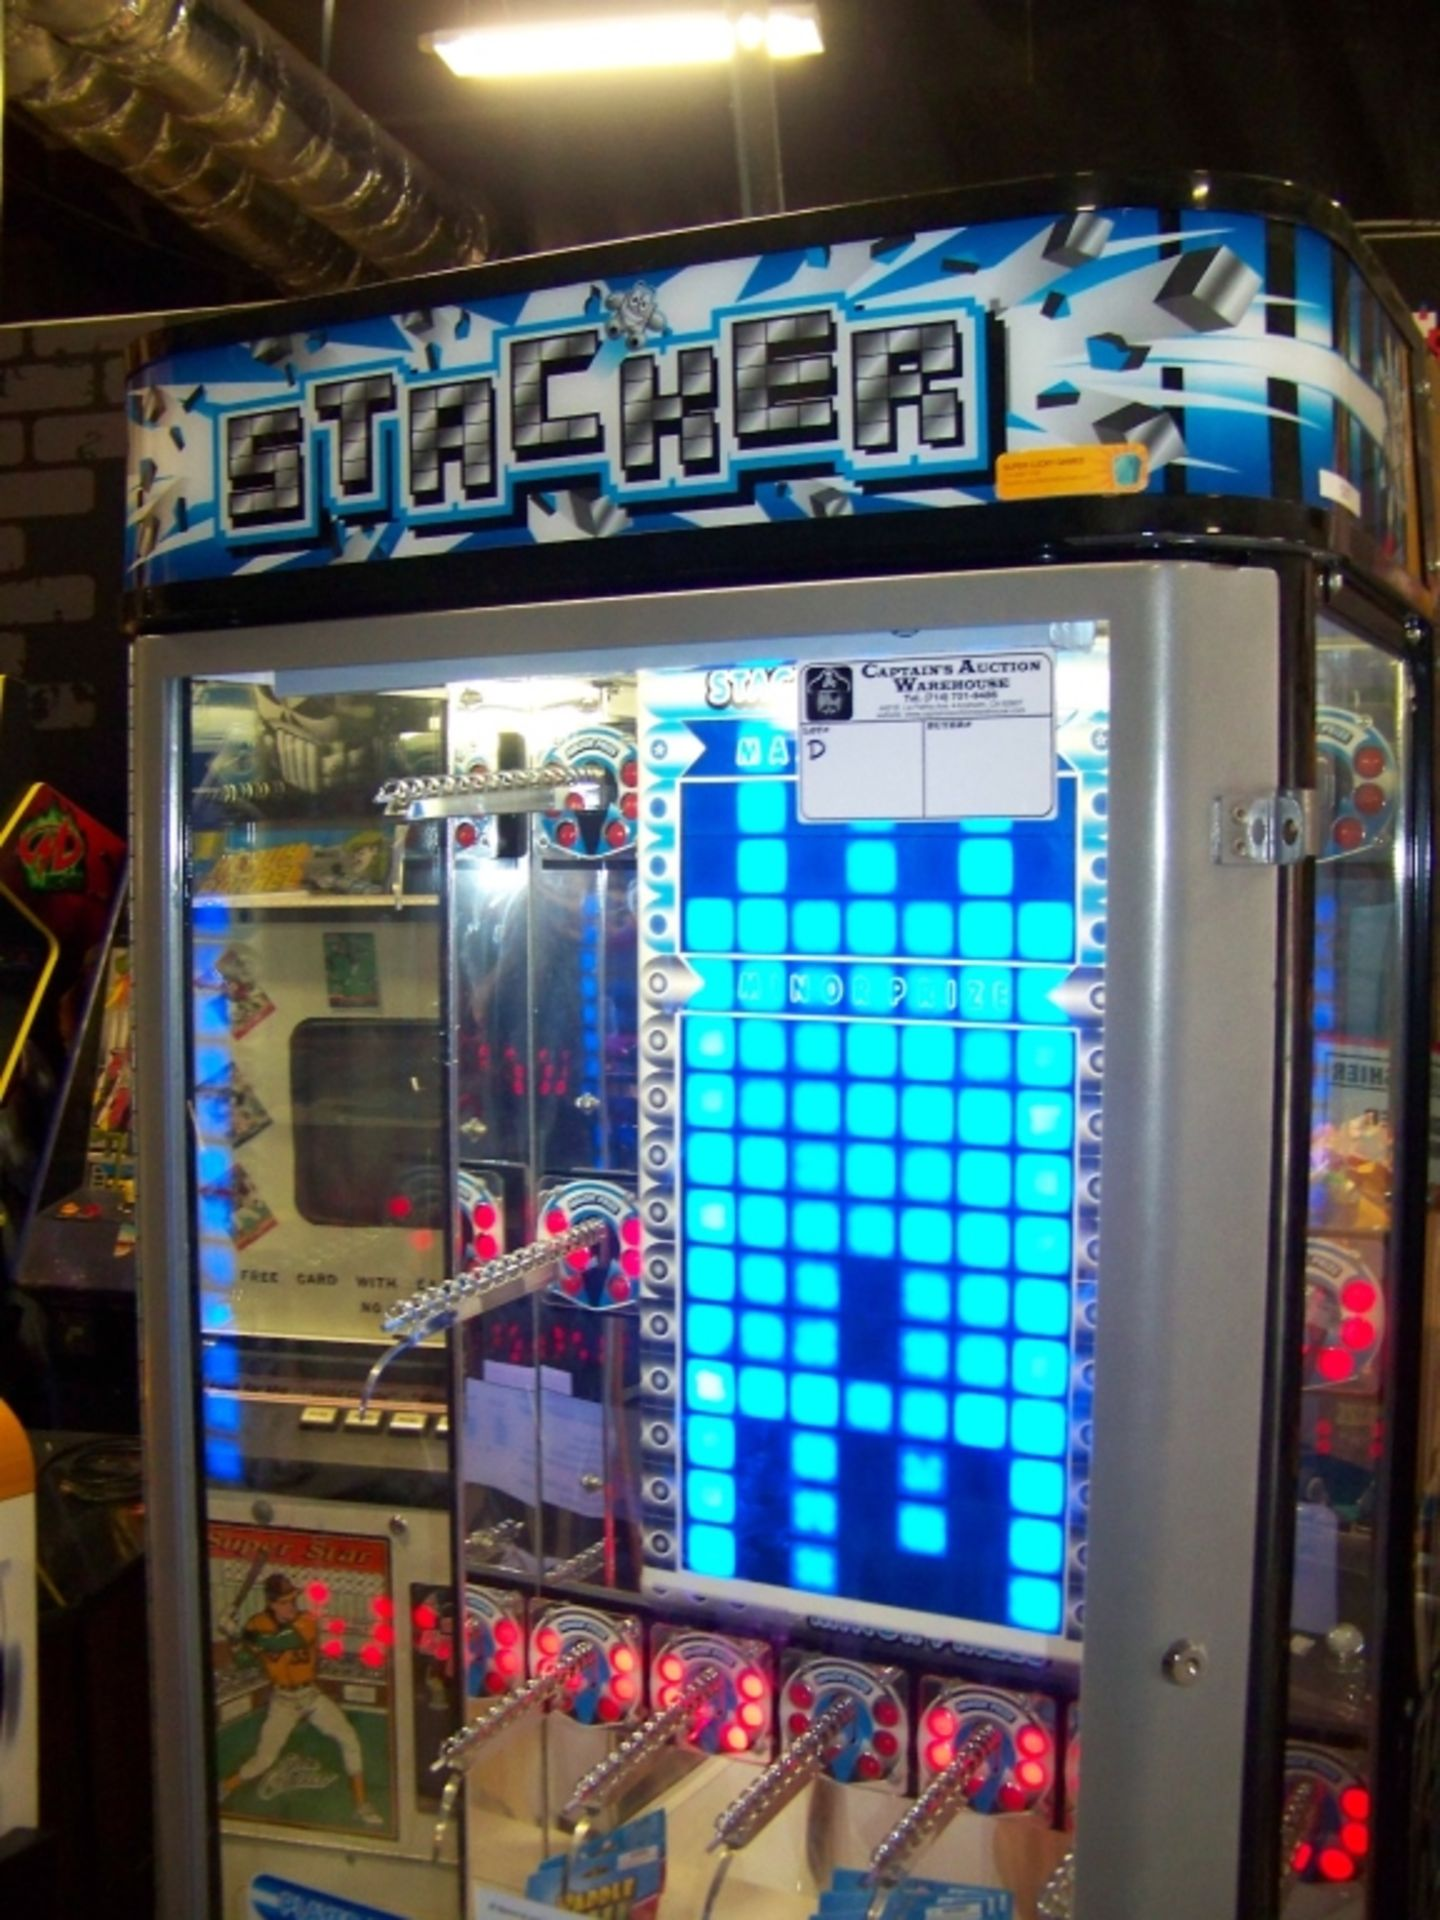 STACKER CLUB BLUE PRIZE REDEMPTION GAME D - Image 4 of 4